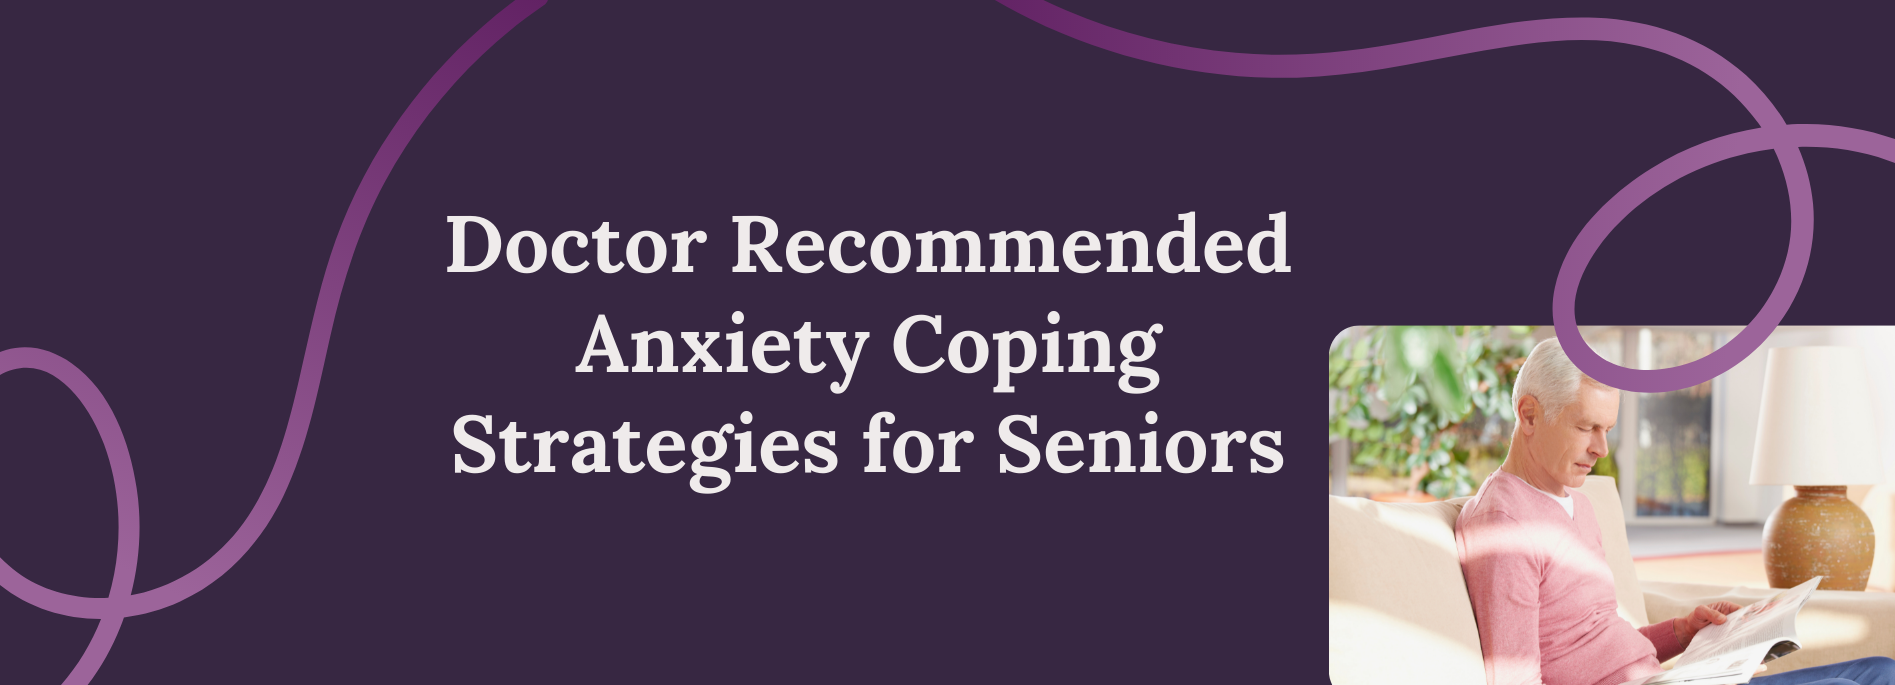 Doctor Recommended Anxiety Coping Strategies for Seniors